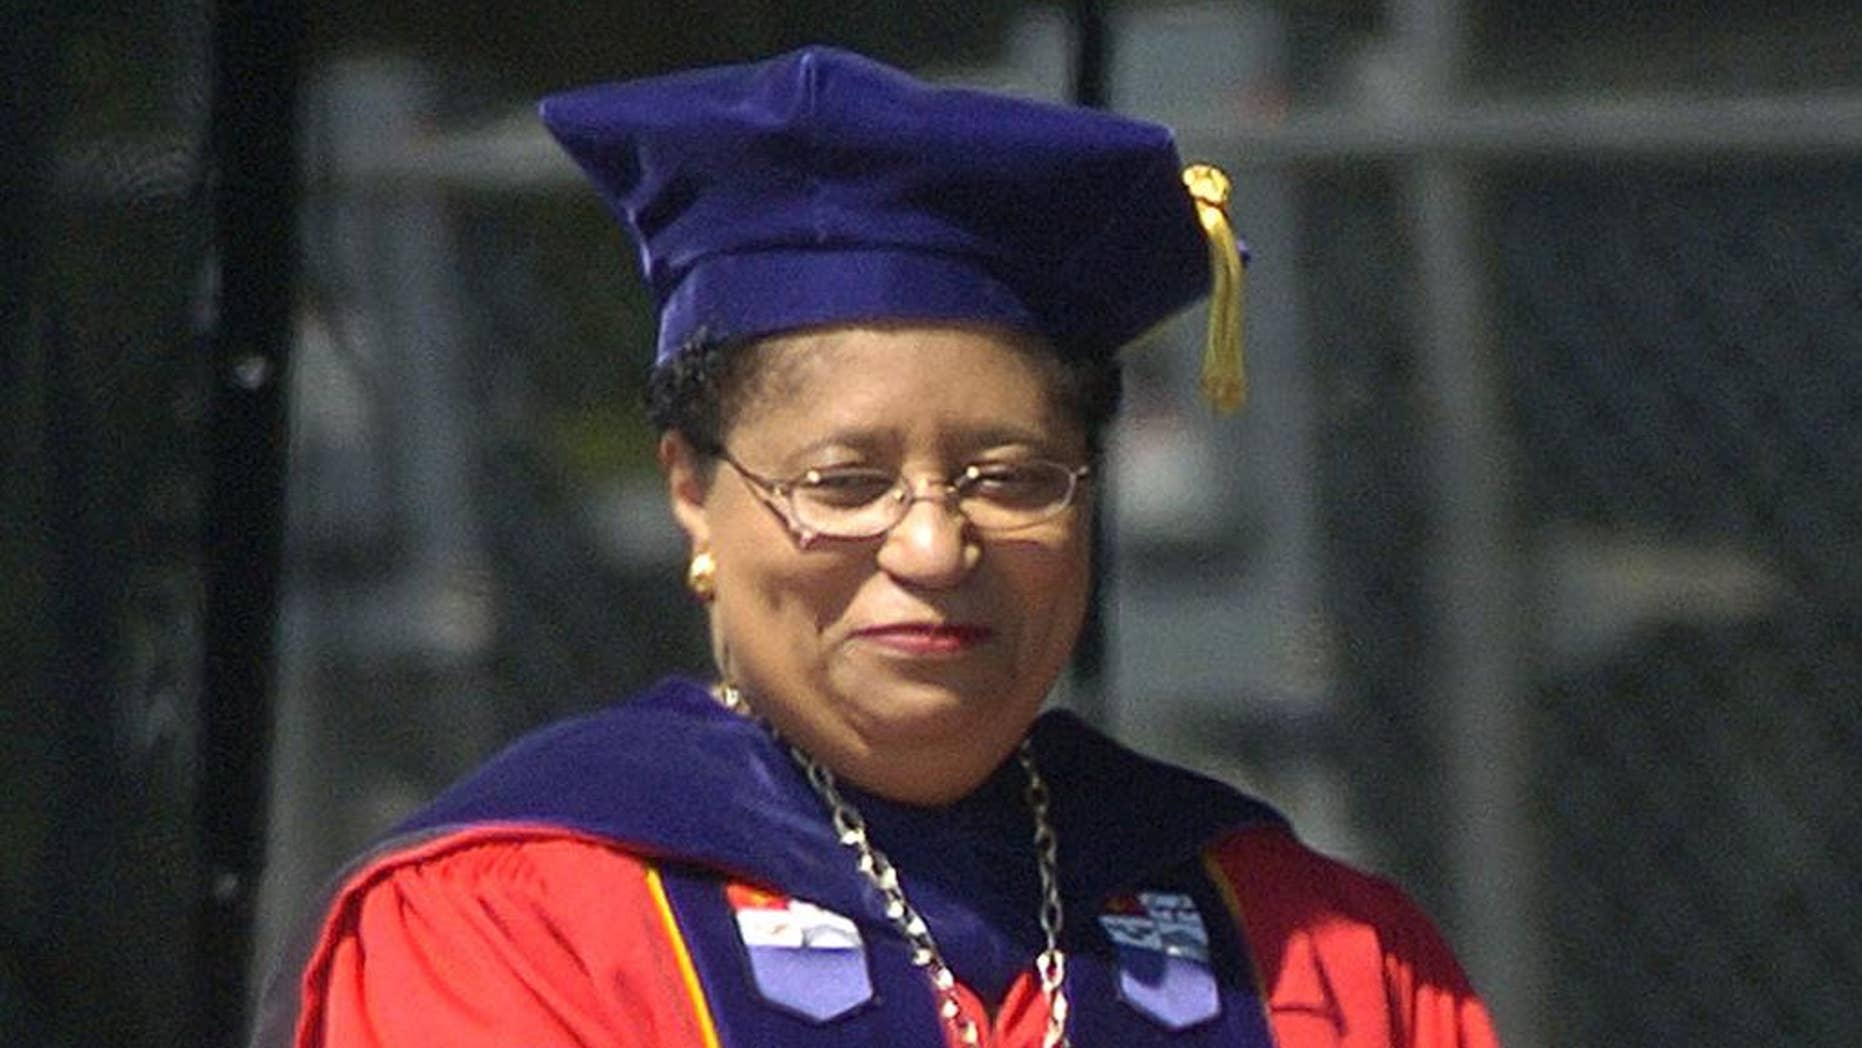 FILE - In this May 21, 2005 file photo, Rensselaer Polytechnic Institute President Shirley Ann Jackson is shown during commencement excercises in Troy, N.Y.   Three dozen college presidents at private colleges and universities made more than a $1 million dollars in 2012, with the highest earner bringing home $7.1 million in compensation, according to a survey of the 500 private schools with the largest endowments. The highest earner was Shirley Ann Jackson at Rensselaer Polytechnic Institute.  Her compensation included a pay out of nearly $5.9 million that had been set aside over a decade as a retention incentive, according to the Chronicle of Higher Education's report released Sunday.  (AP Photo/Tim Roske)